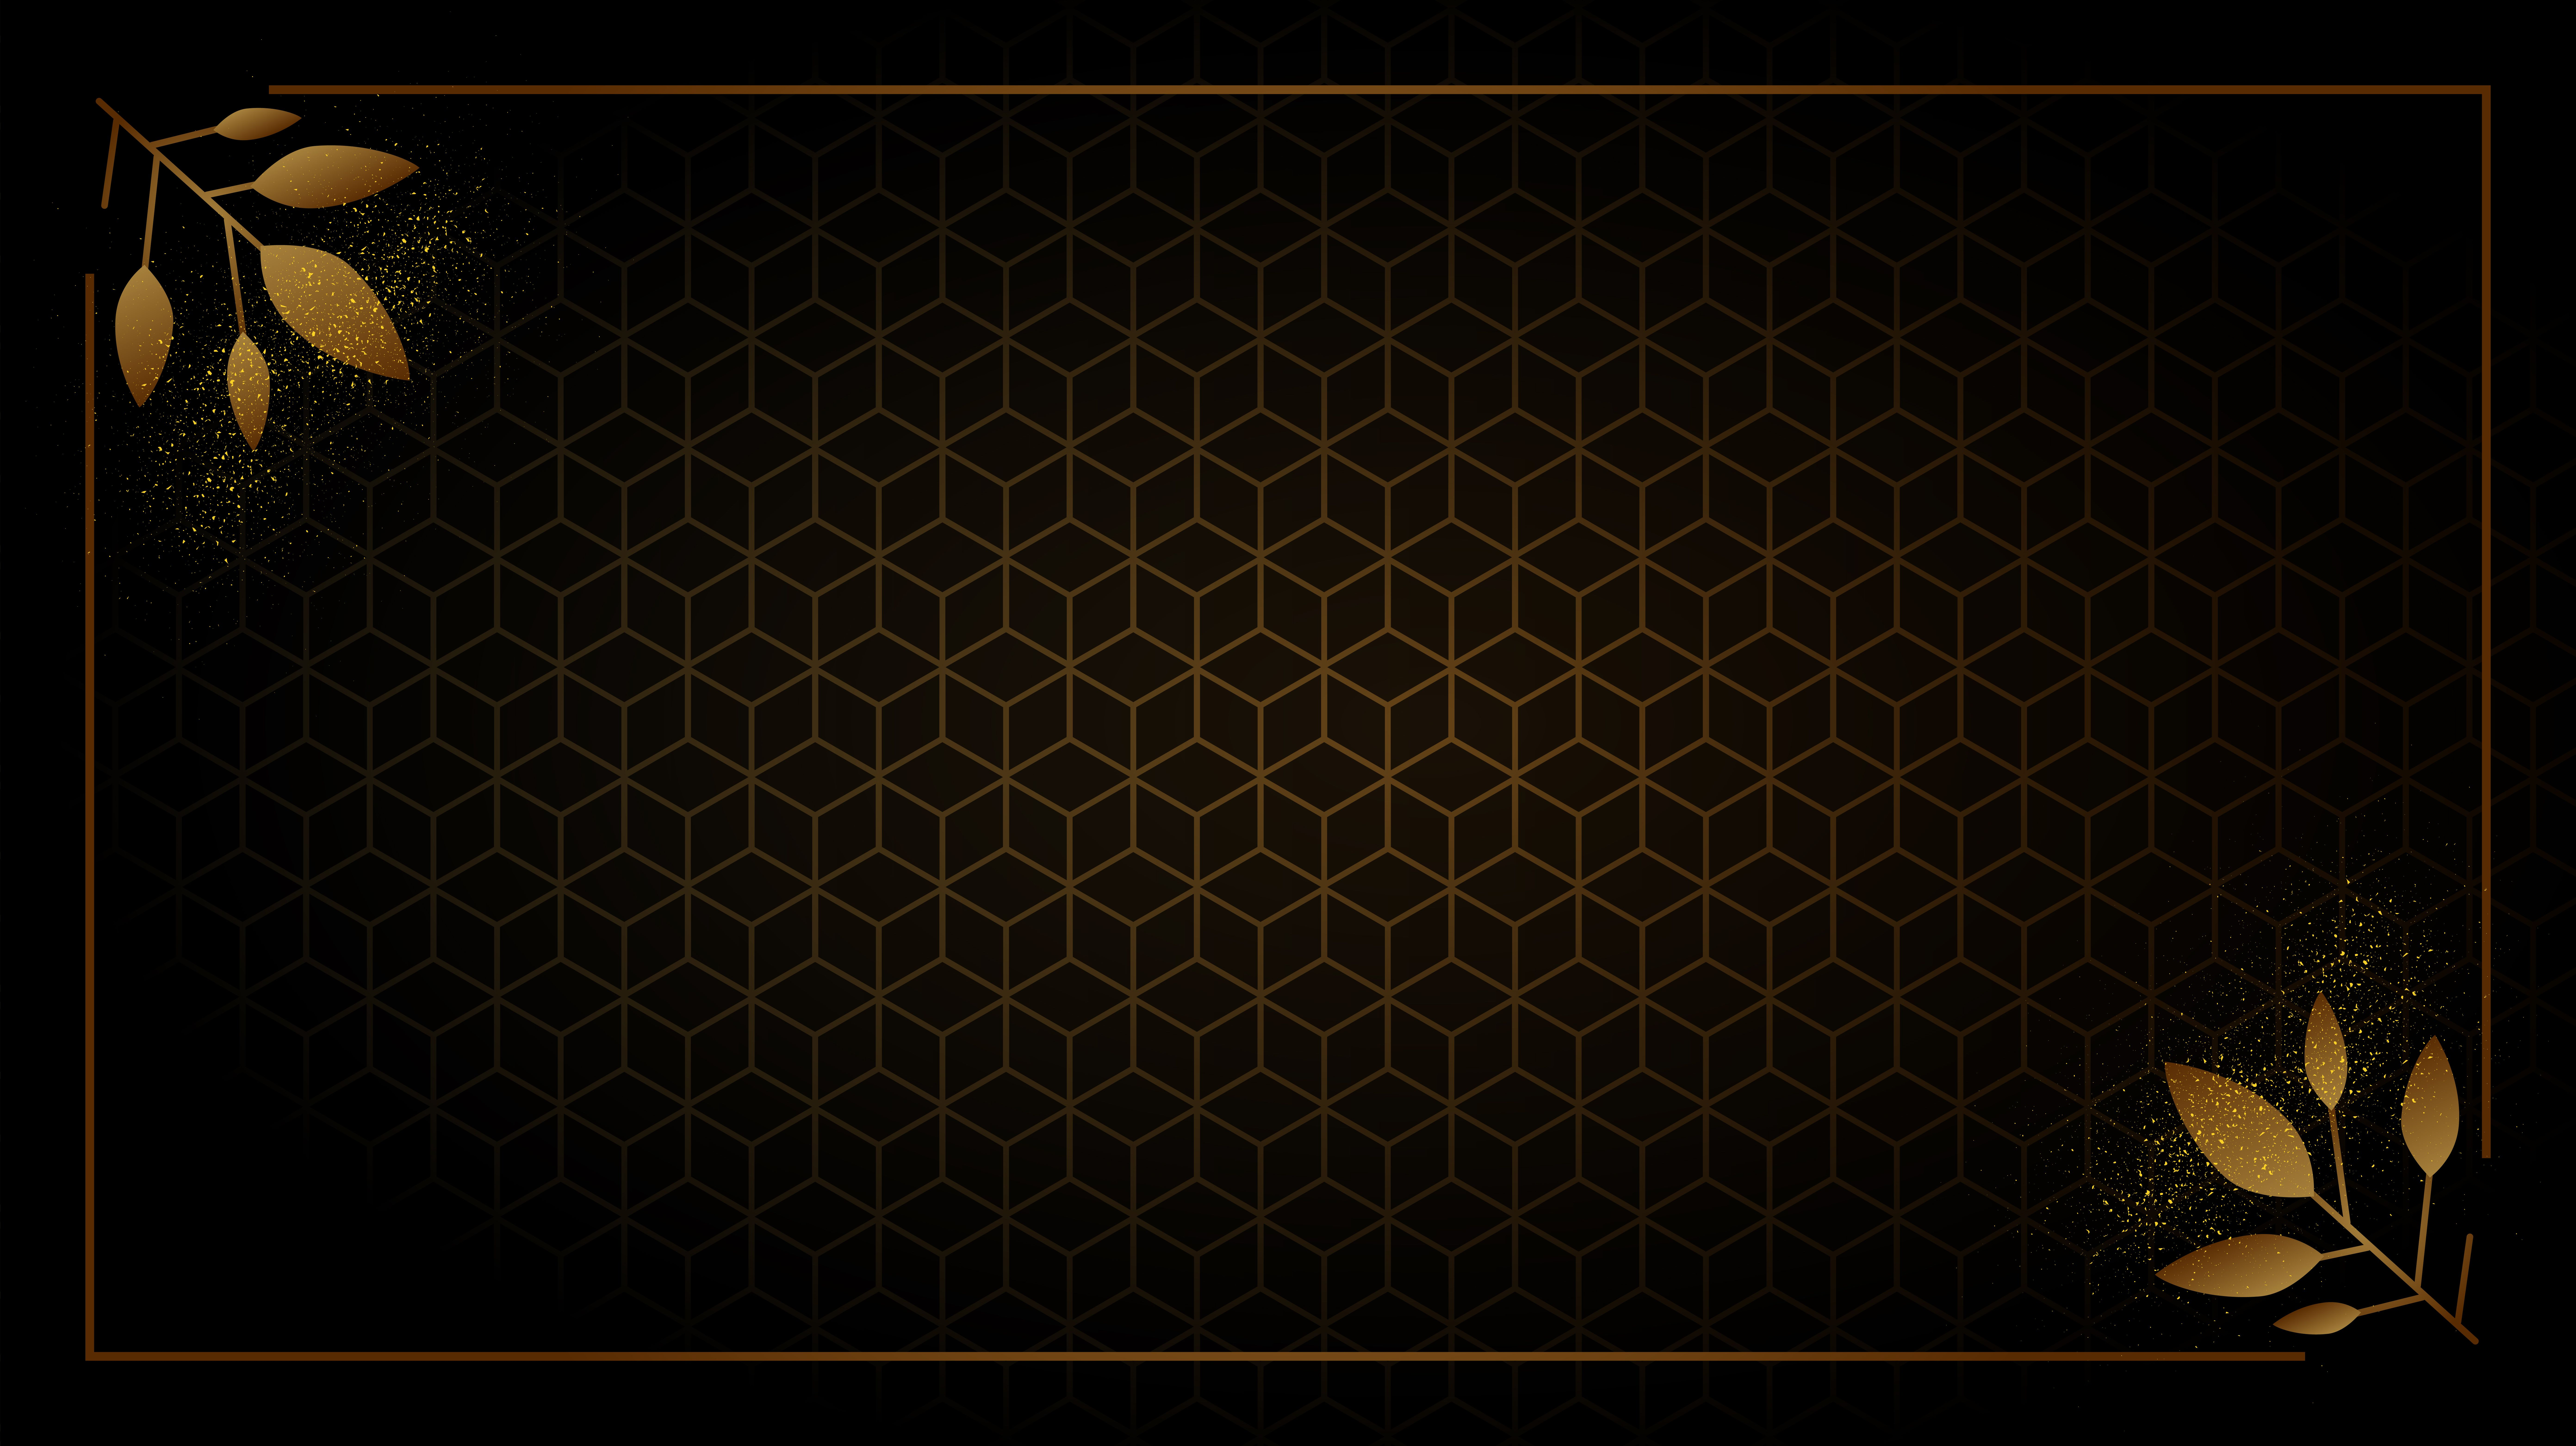 Black and Gold background abstract geometric shapes luxury